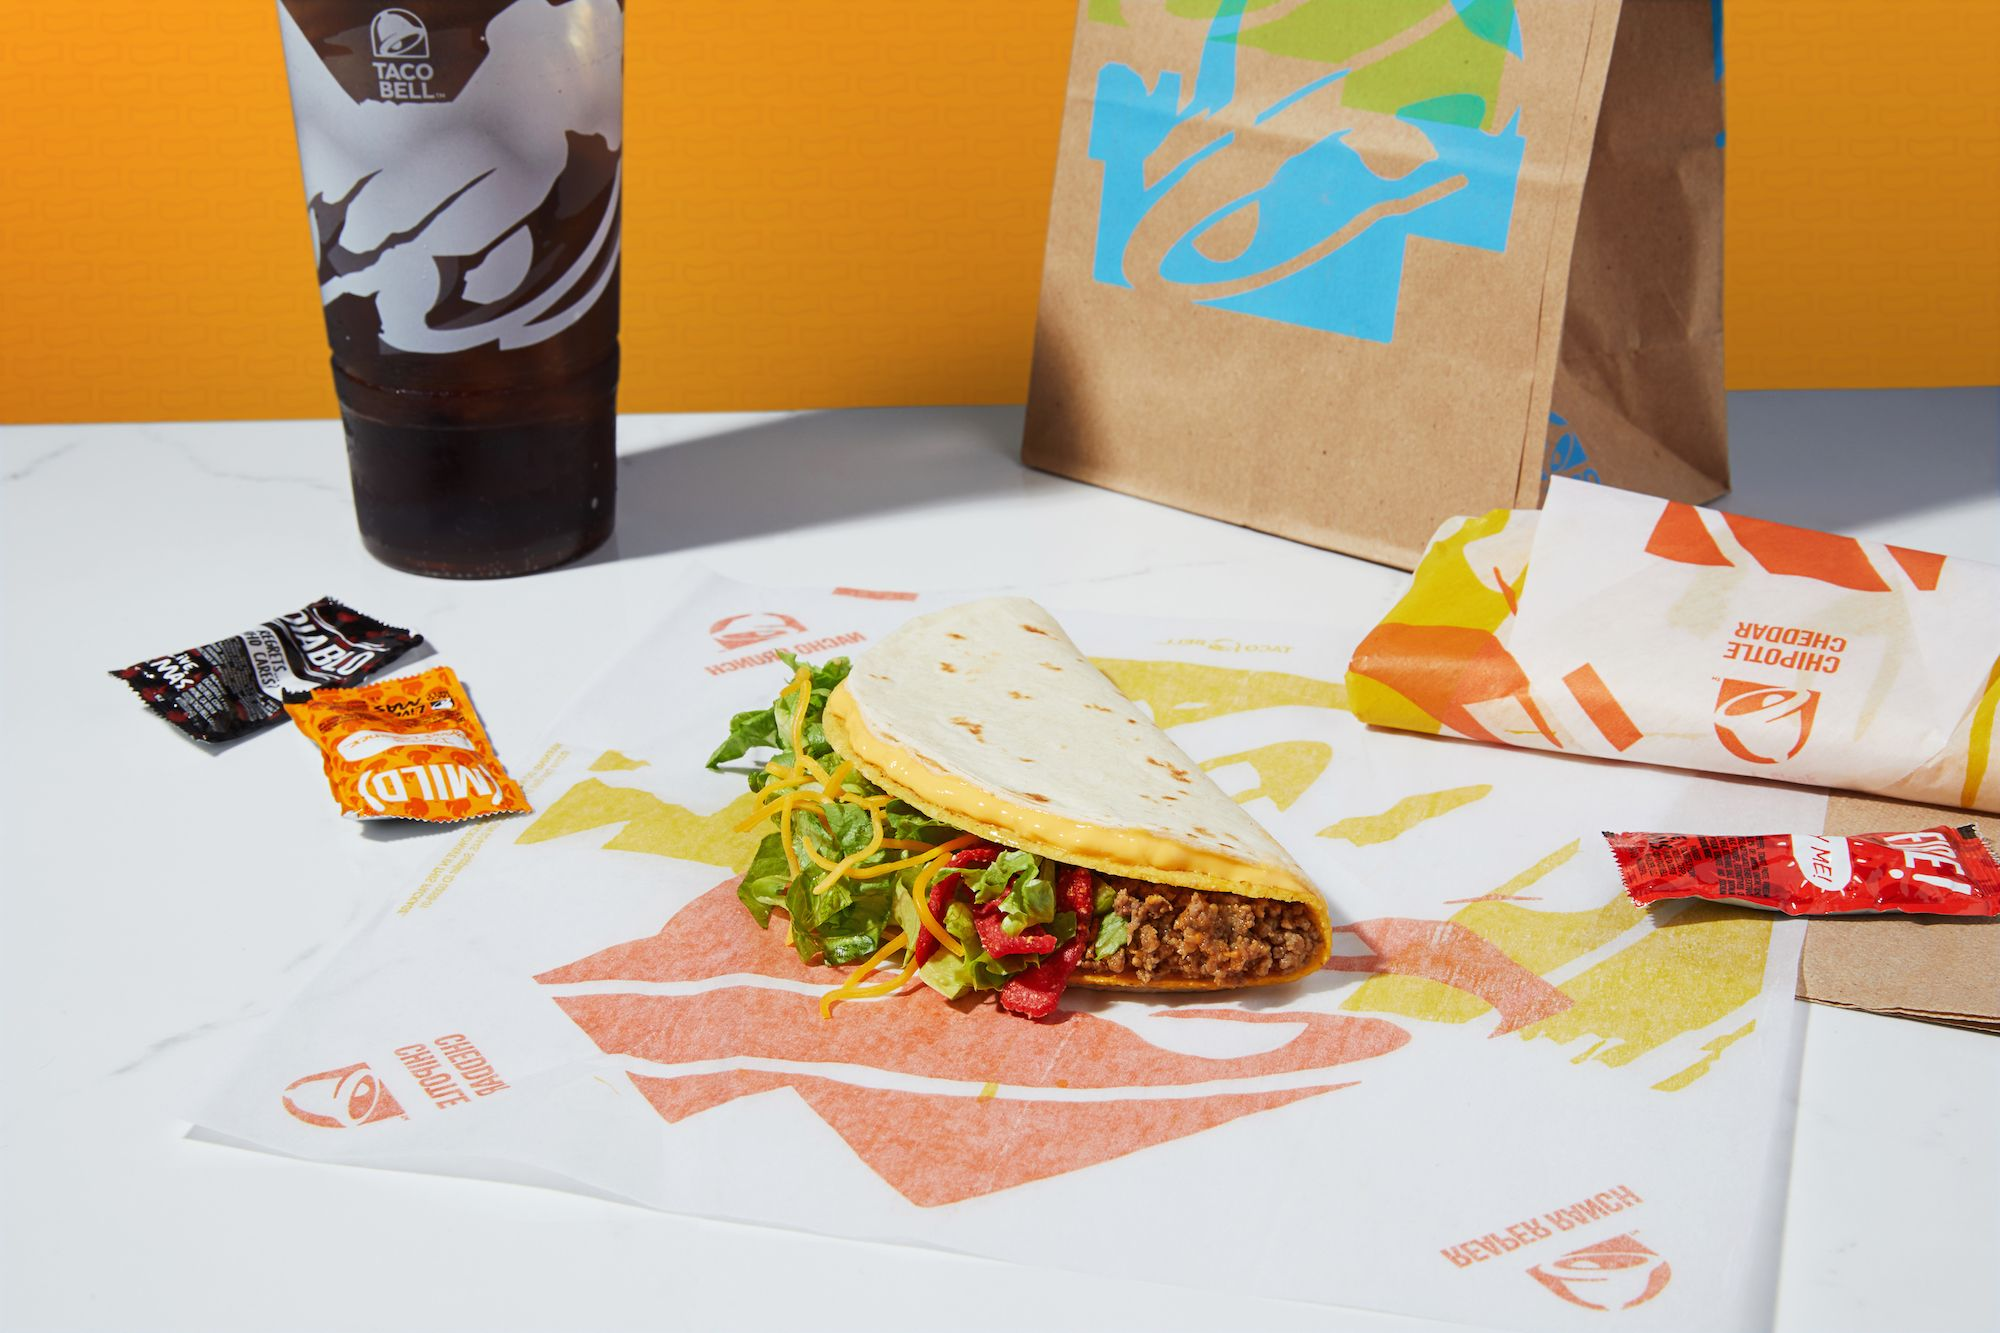 17 Things You Need To Know Before Ordering Taco Bell